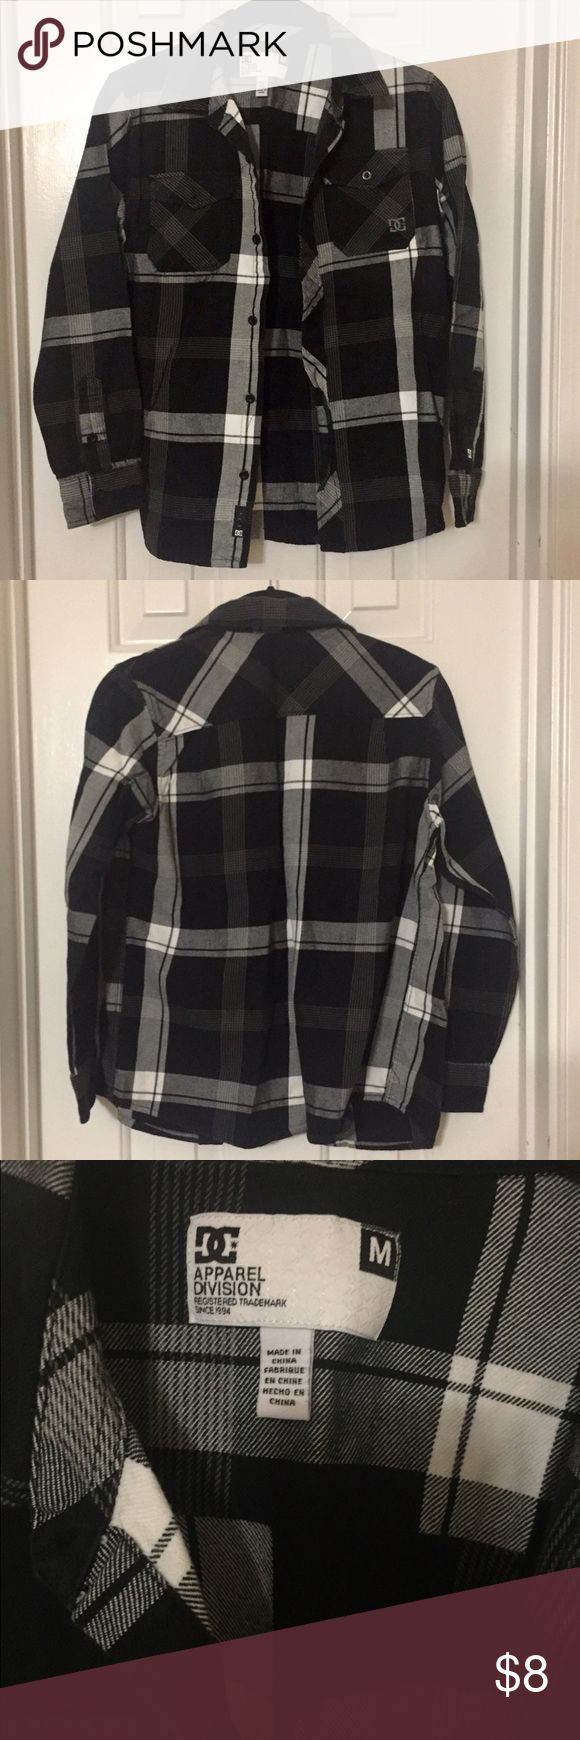 Youth Boys DC Button Up Flannel Shirt Medium DC shoe company shirt. Like new!!! Excellent condition. Worn only a couple of times, if that. Size Medium DC Shirts & Tops Button Down Shirts